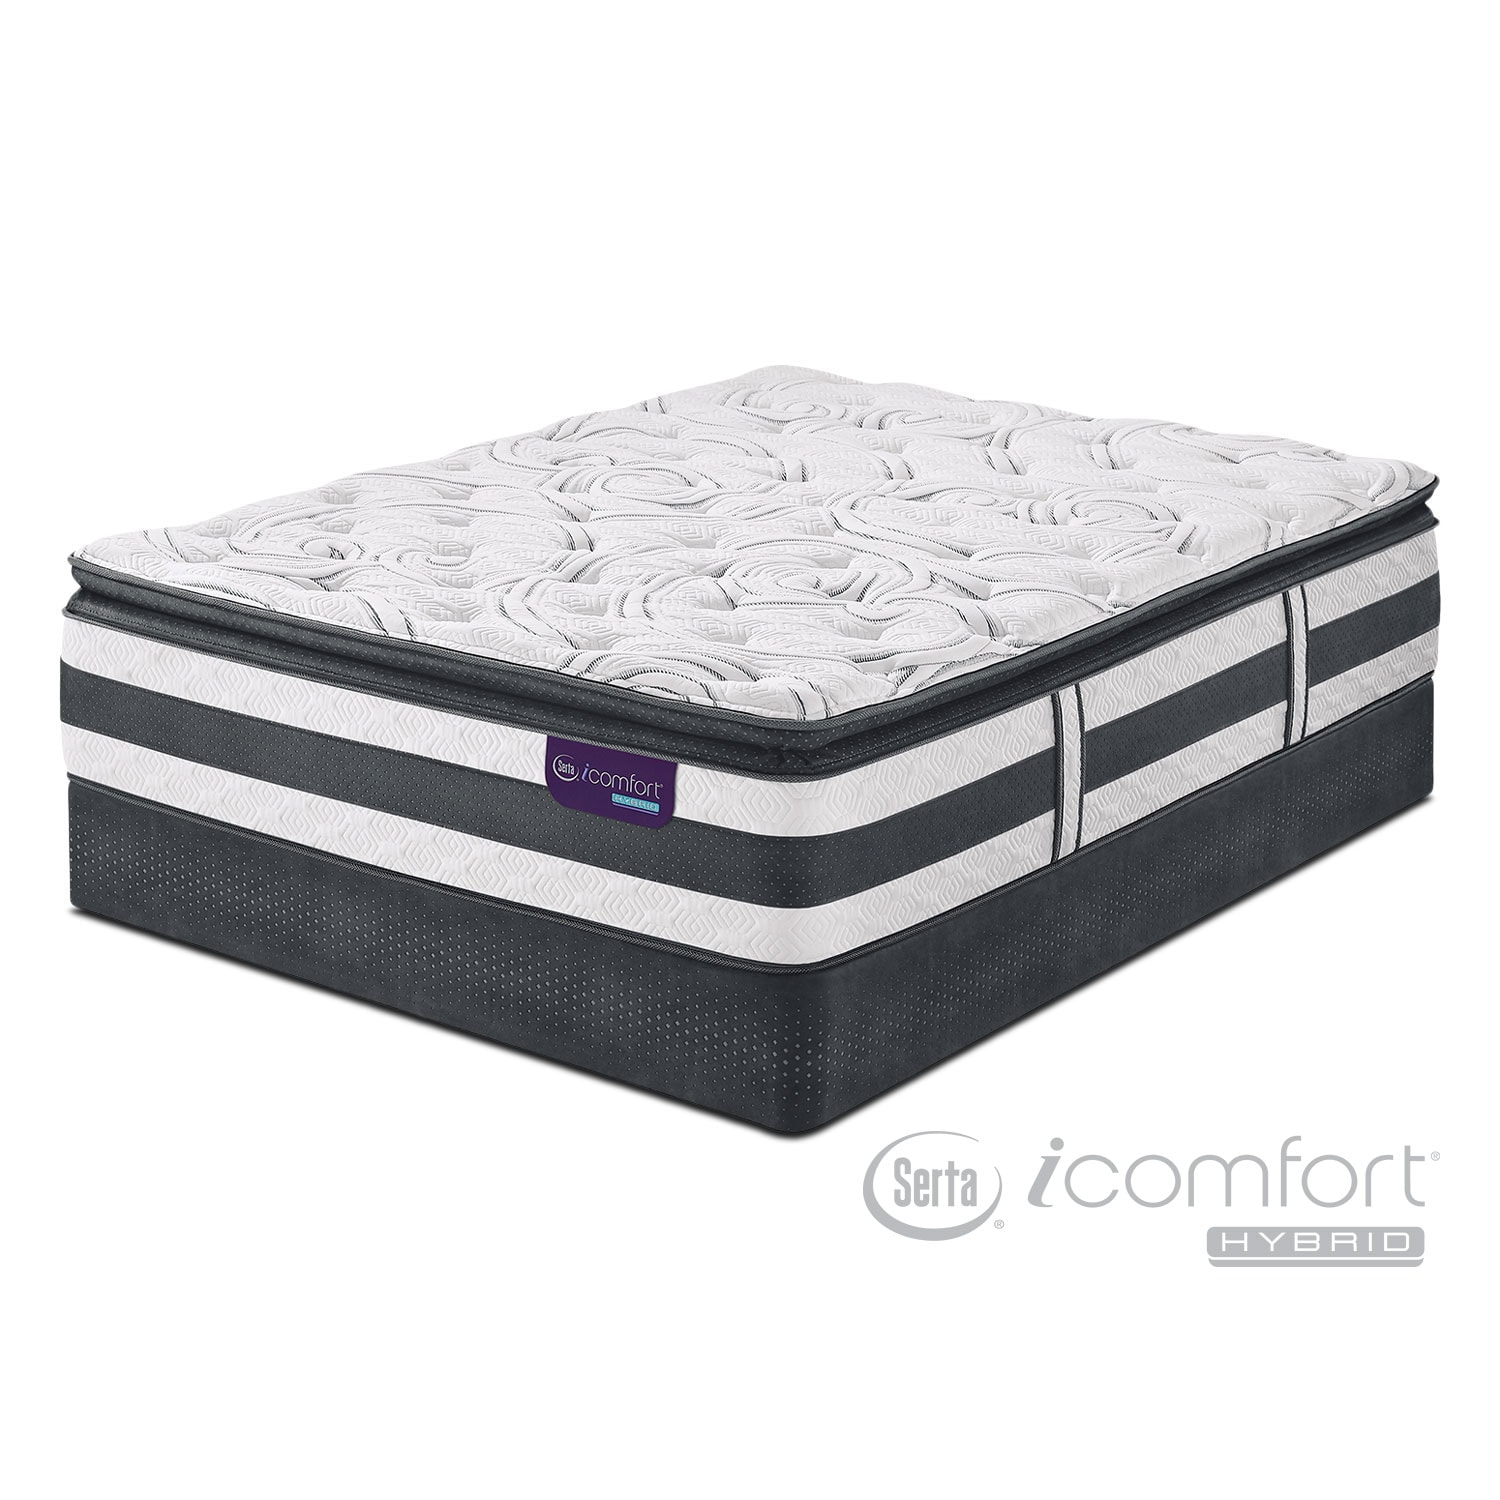 Mattresses and Bedding - Observer Plush King Mattress and Split Foundation Set